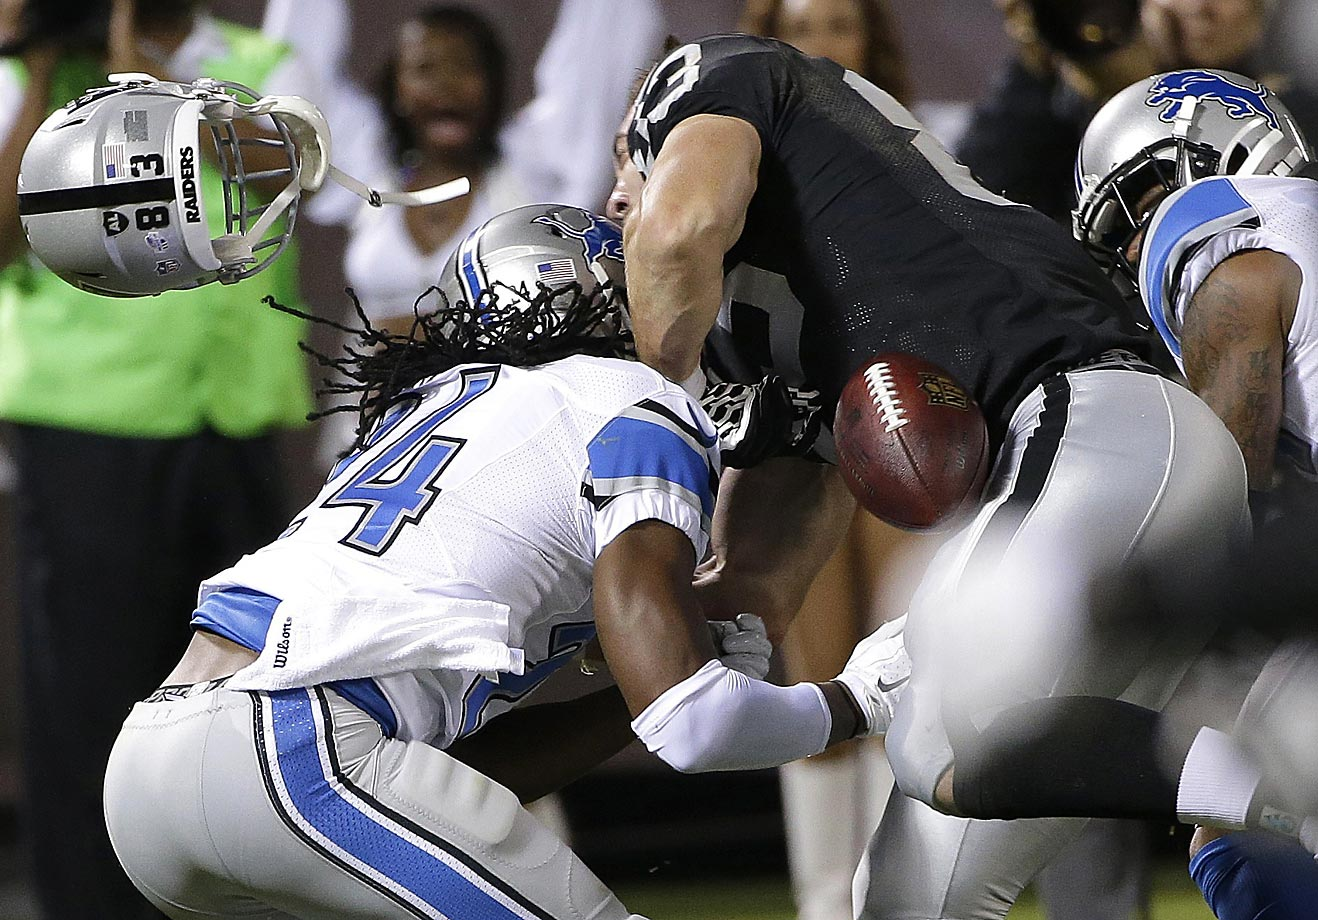 Oakland Raiders tight end Scott Simonson loses his helmet and a fumble as he's hit by Detroit Lions defensive back DeJon Gomes.